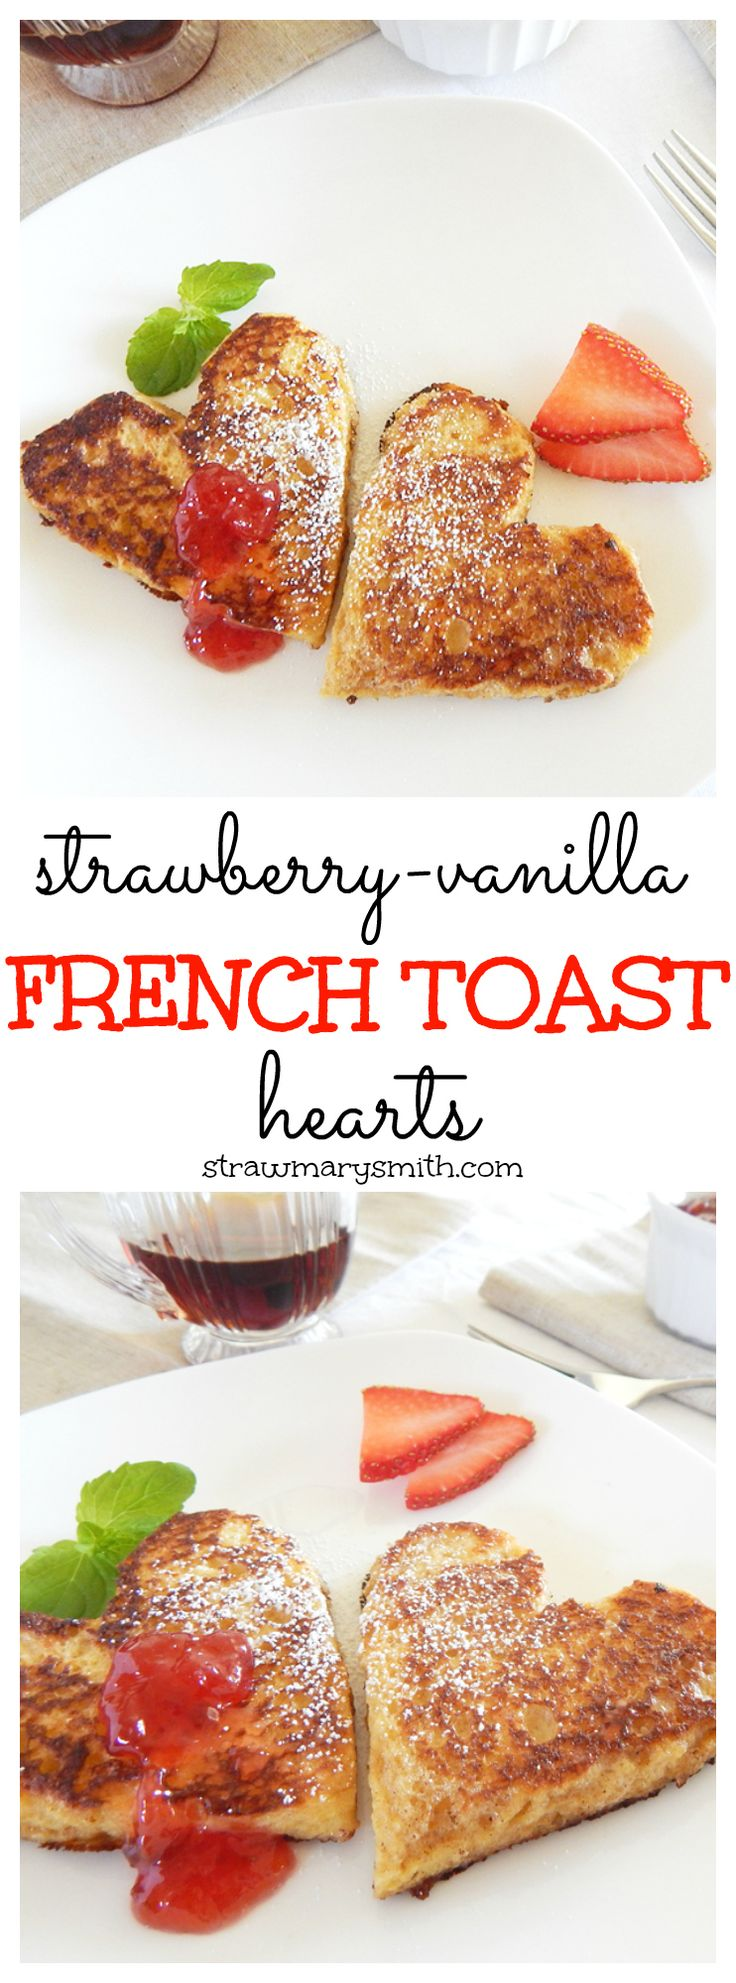 Strawberry-Vanilla French Toast Hearts are the perfect 10 minute Valentine's Day breakfast for your loved one!